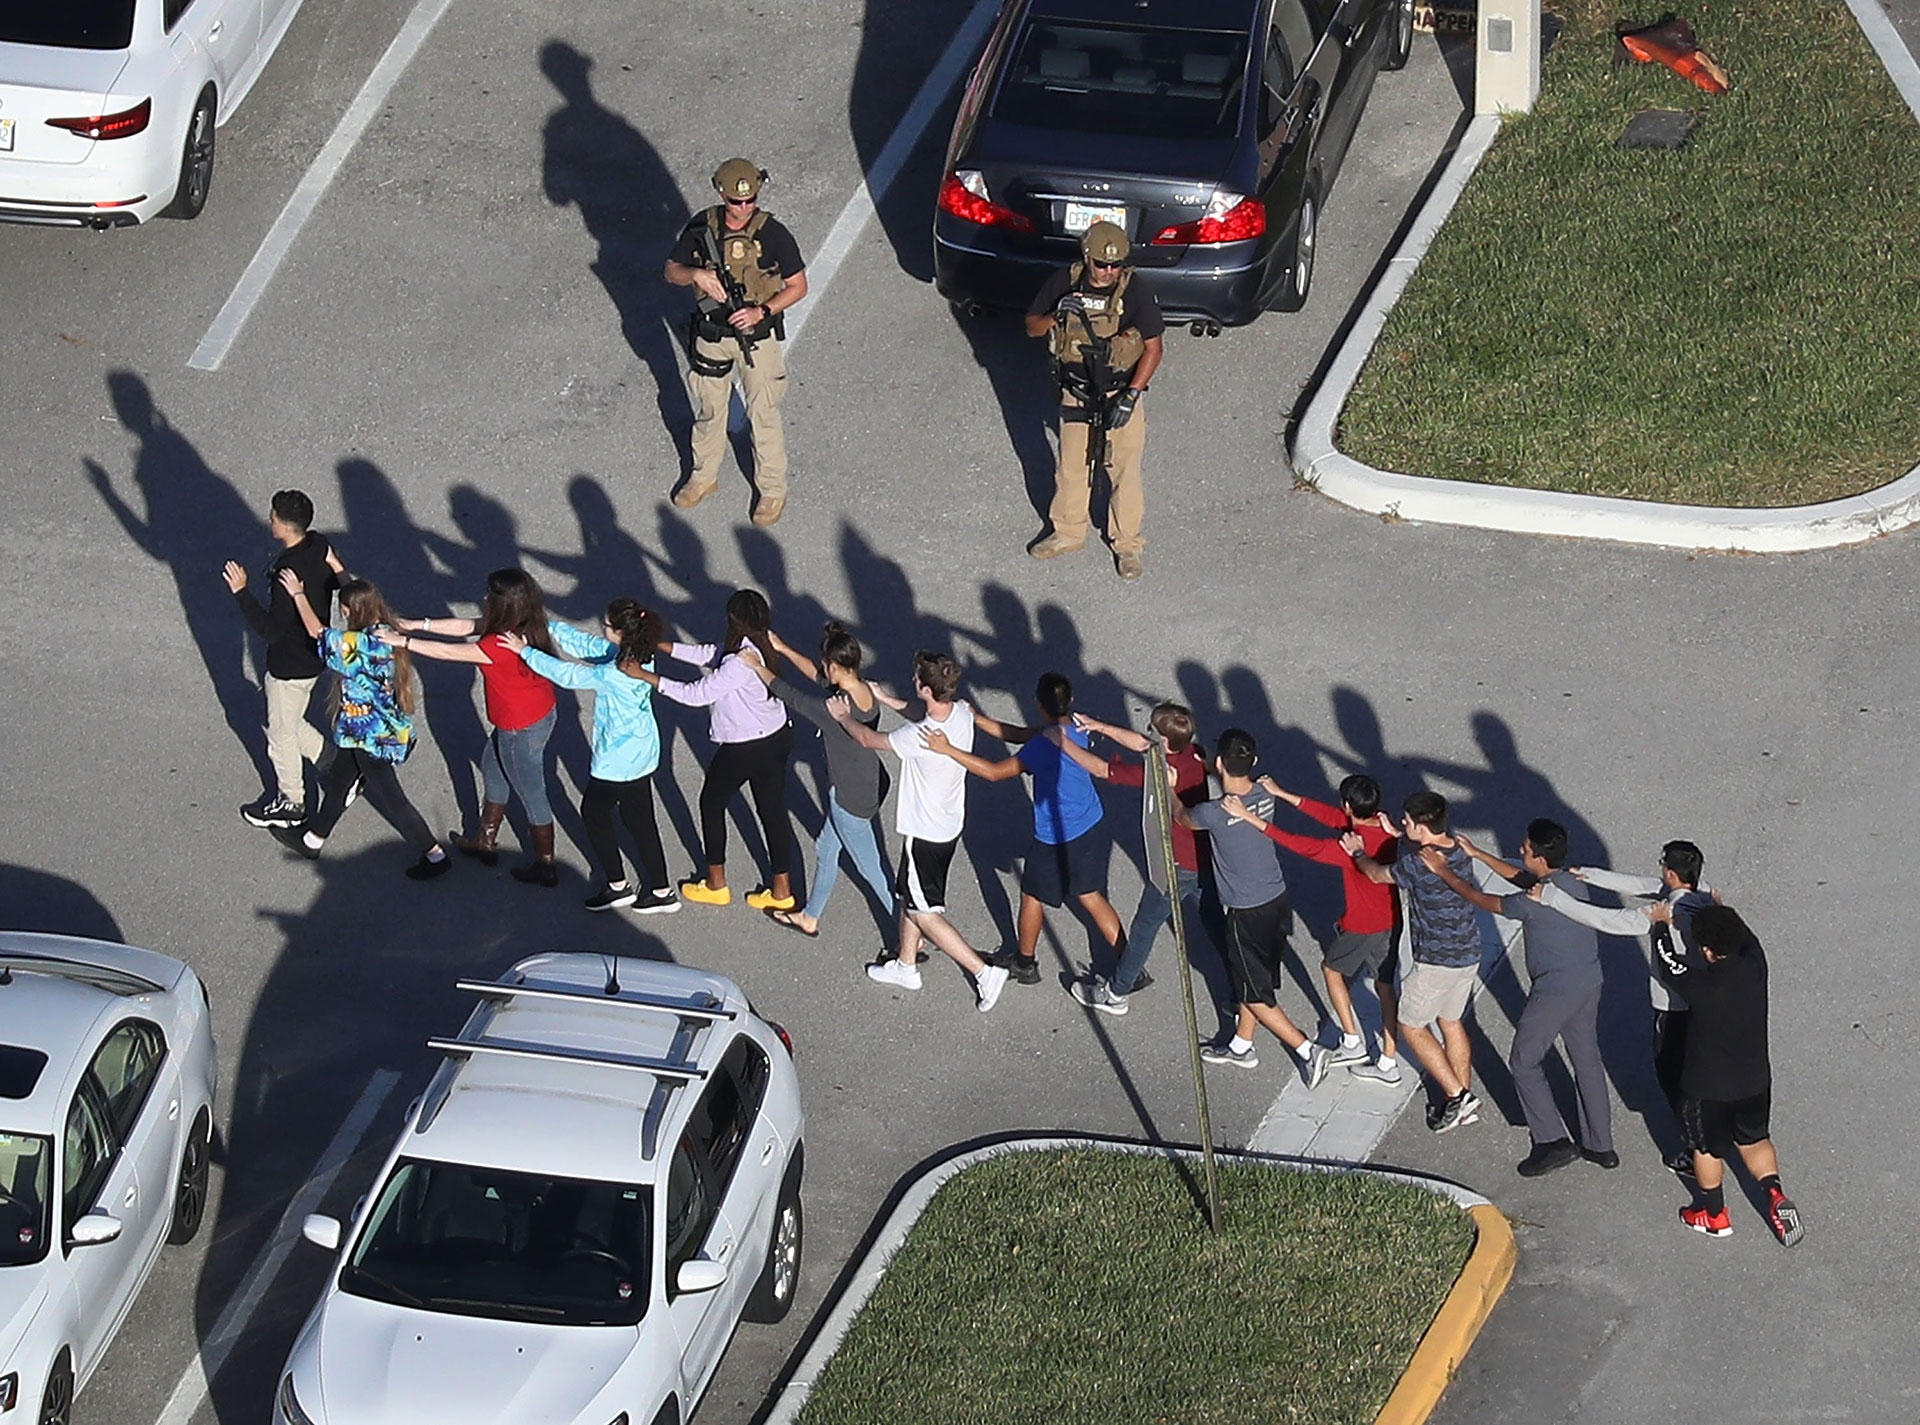 Students walk out of Marjory Stoneman Douglas High School in Parkland, Florida, on Feb. 14 after a former student opened fire